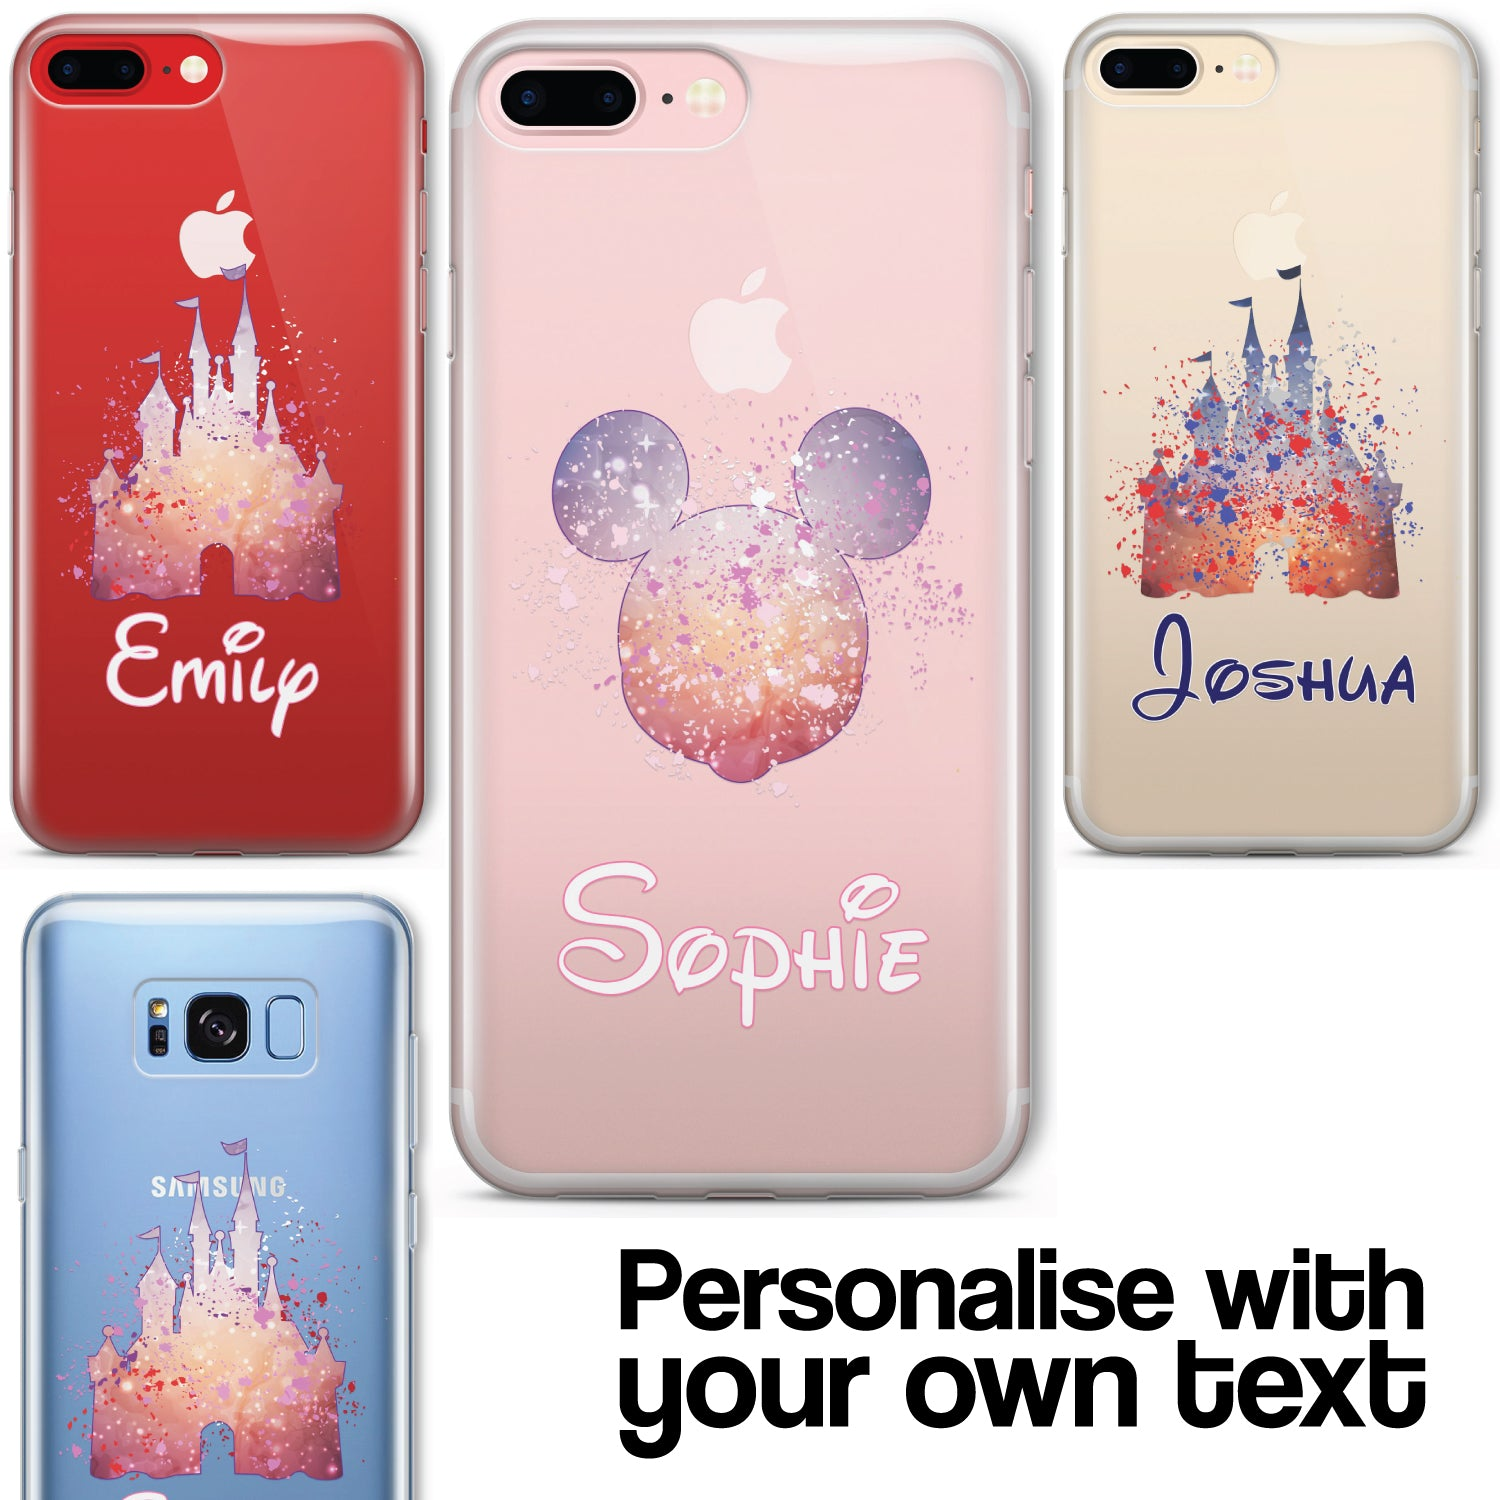 3495503c3 Details about Cartoon Movie PERSONALISED CLEAR TPU Phone Cover Case for  iPhone & Samsung Disne